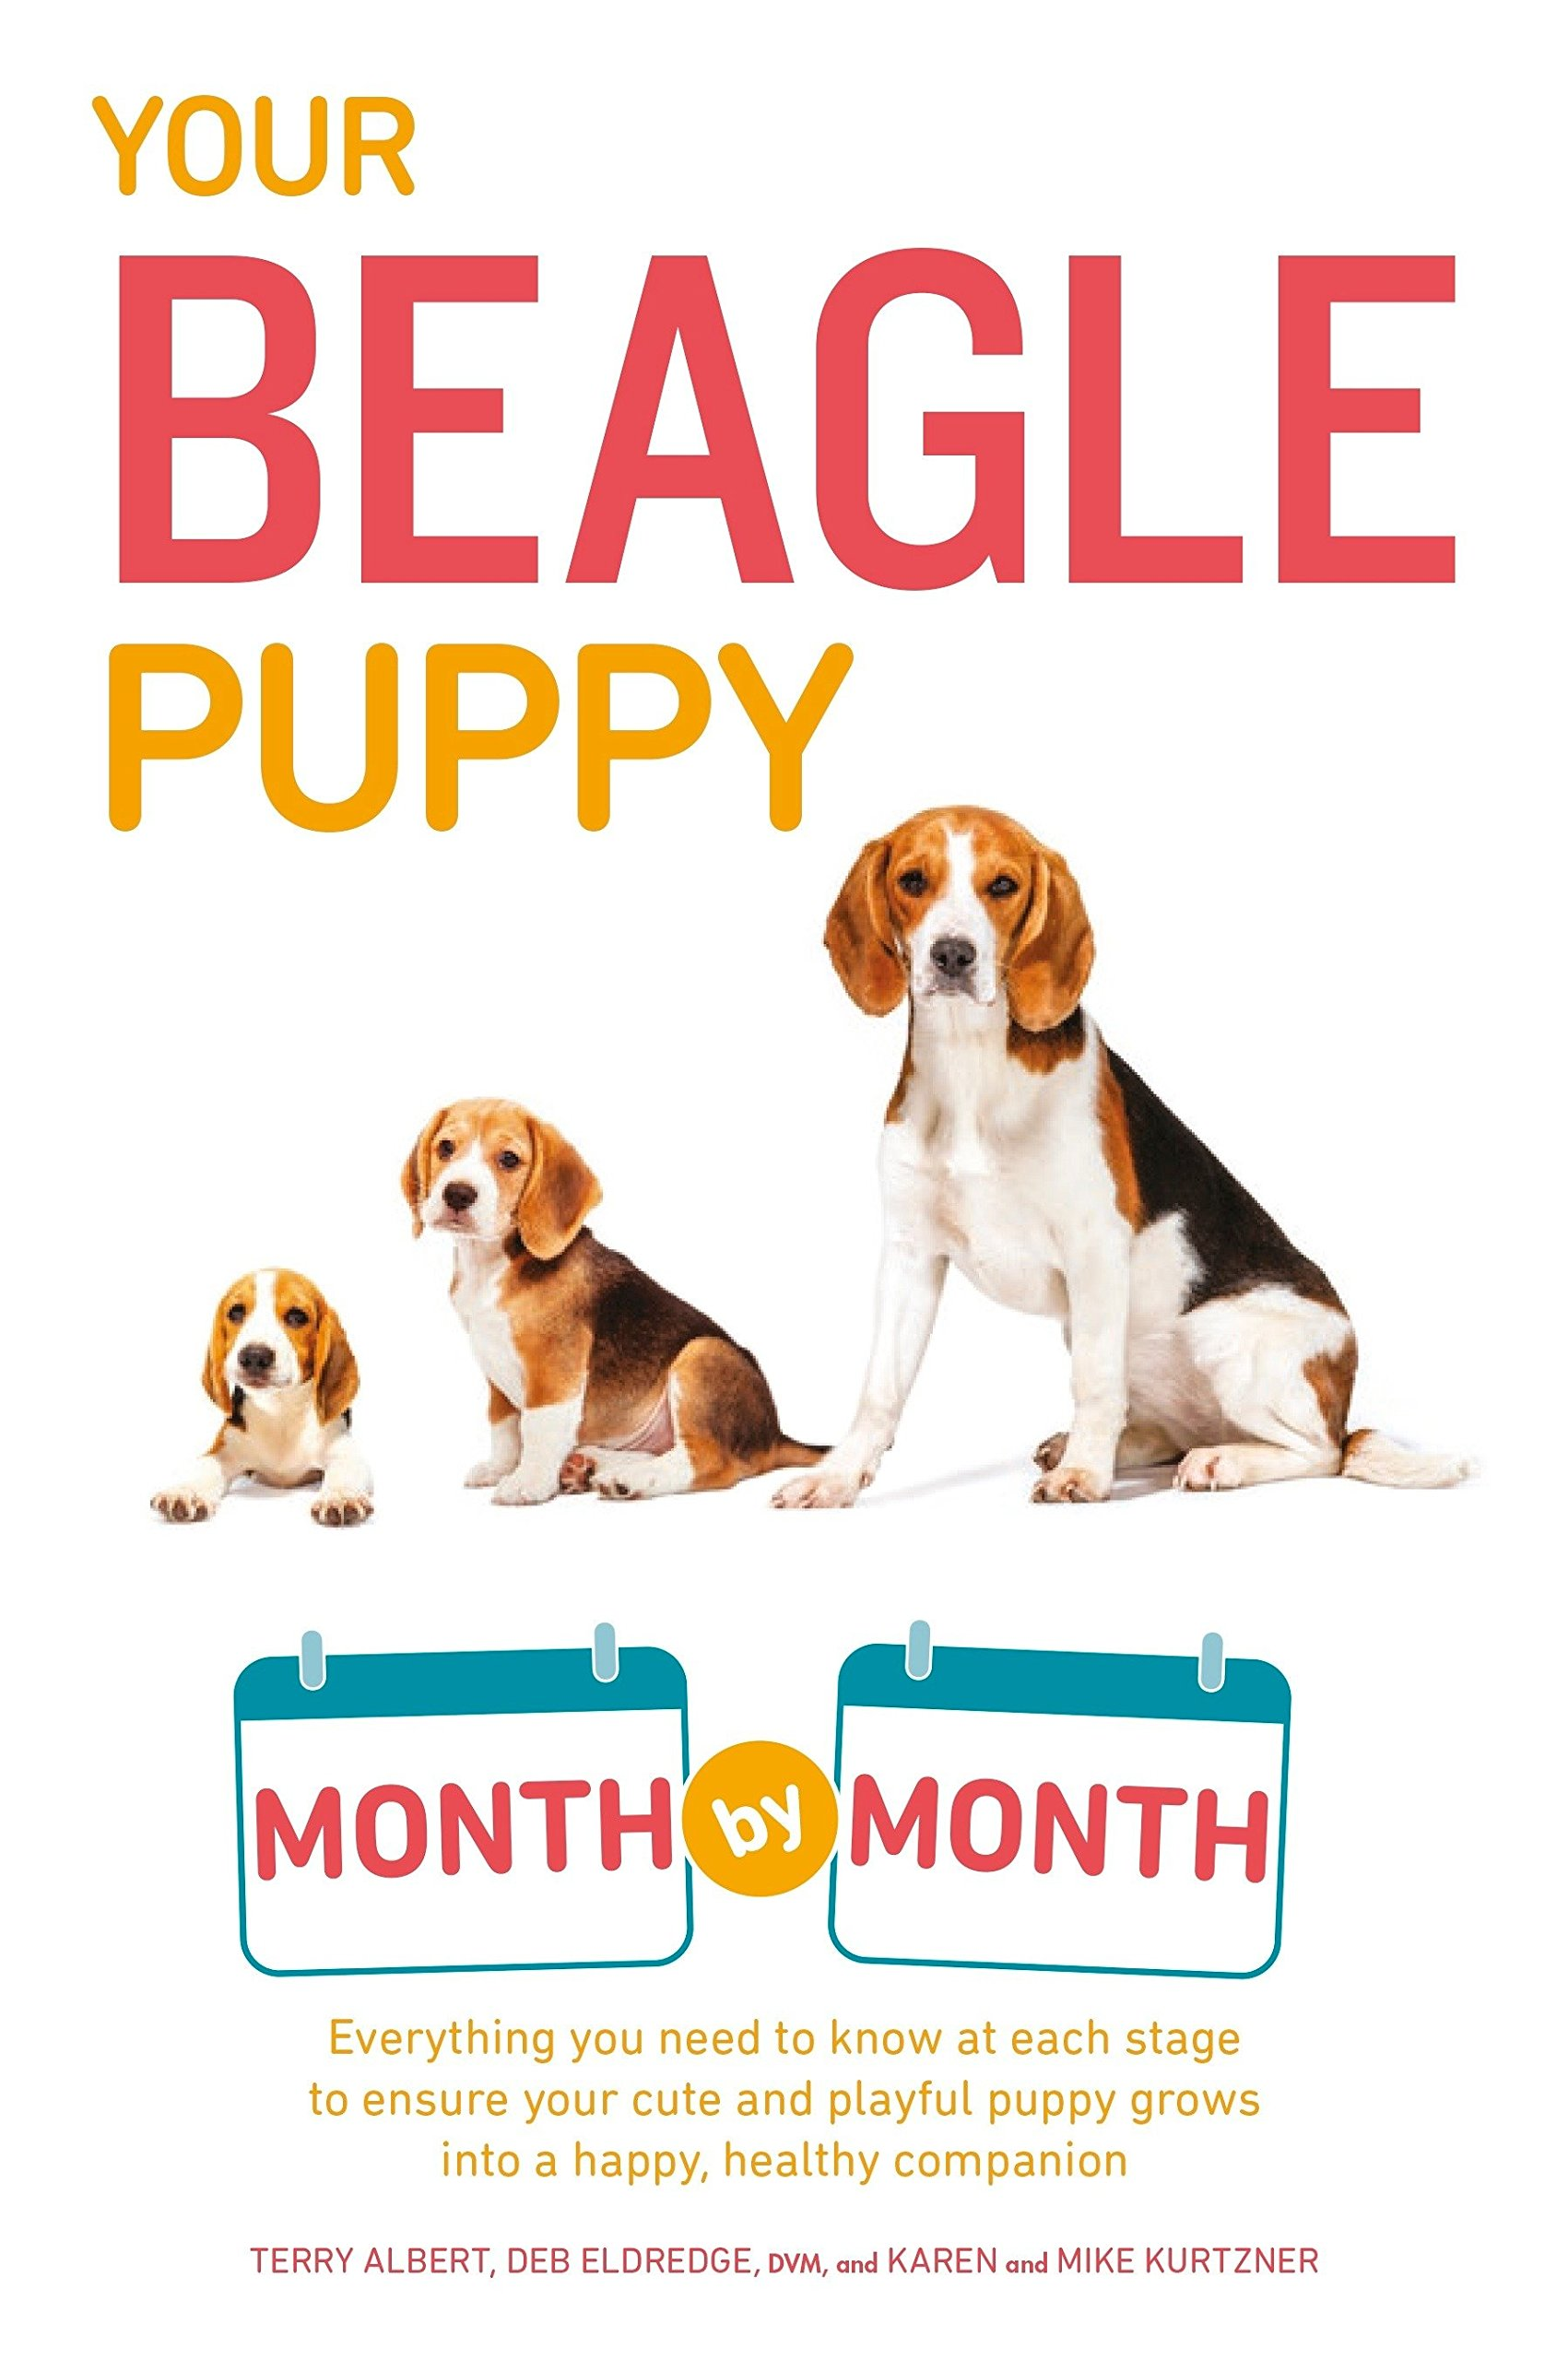 Your Beagle Puppy Month by Month: Everything You Need to Know at Each State to Ensure Your Cute and Playful Puppy (Your…